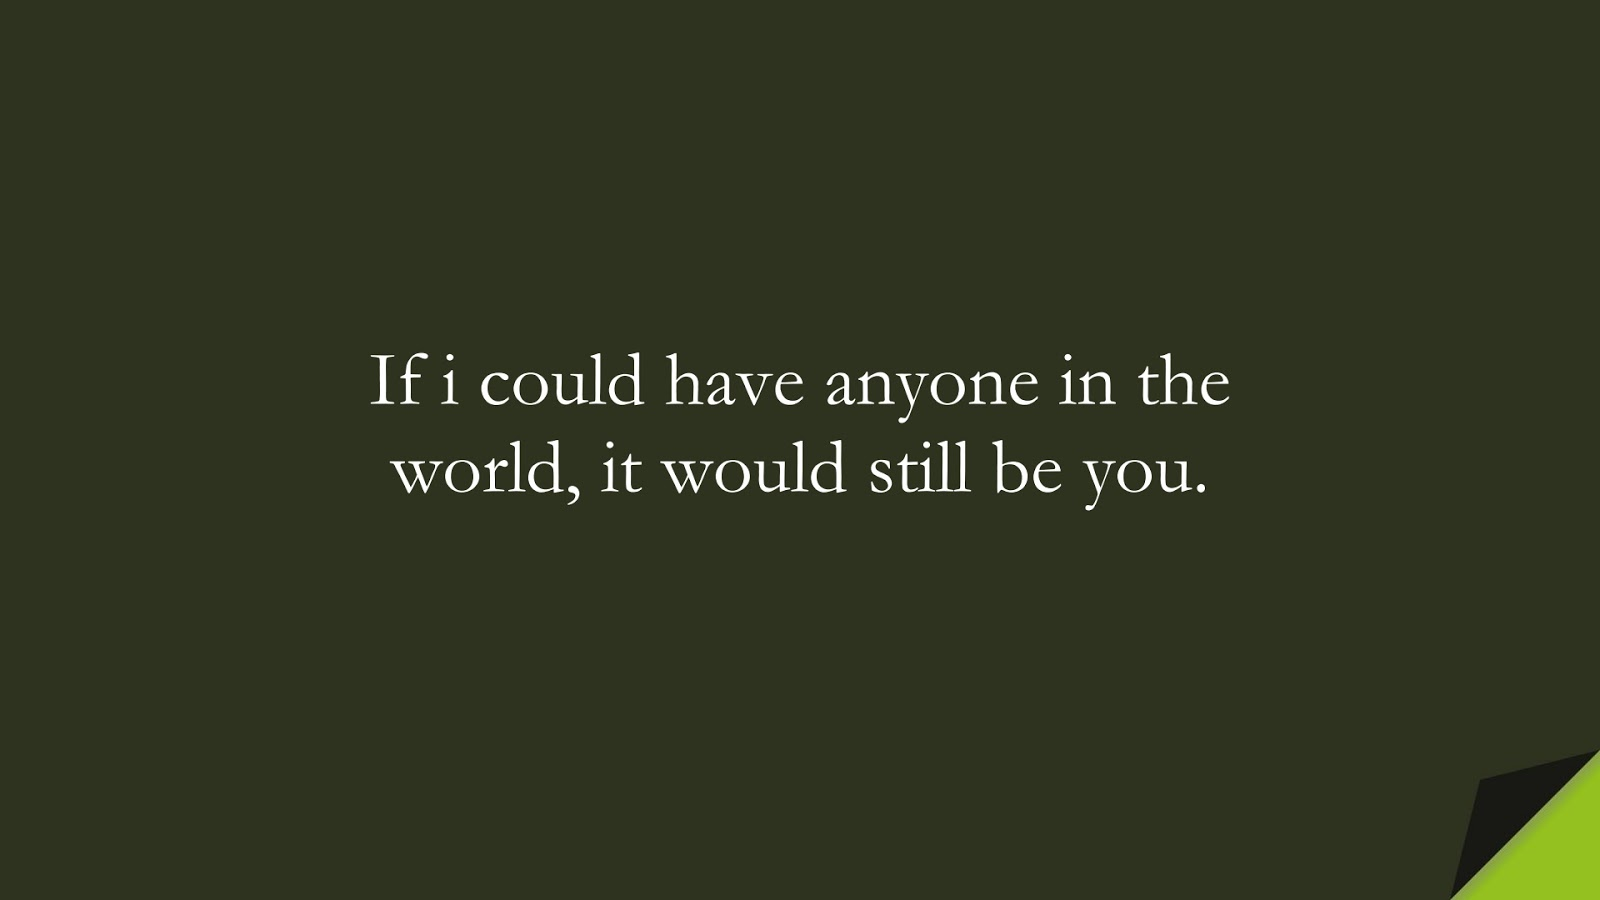 If i could have anyone in the world, it would still be you.FALSE